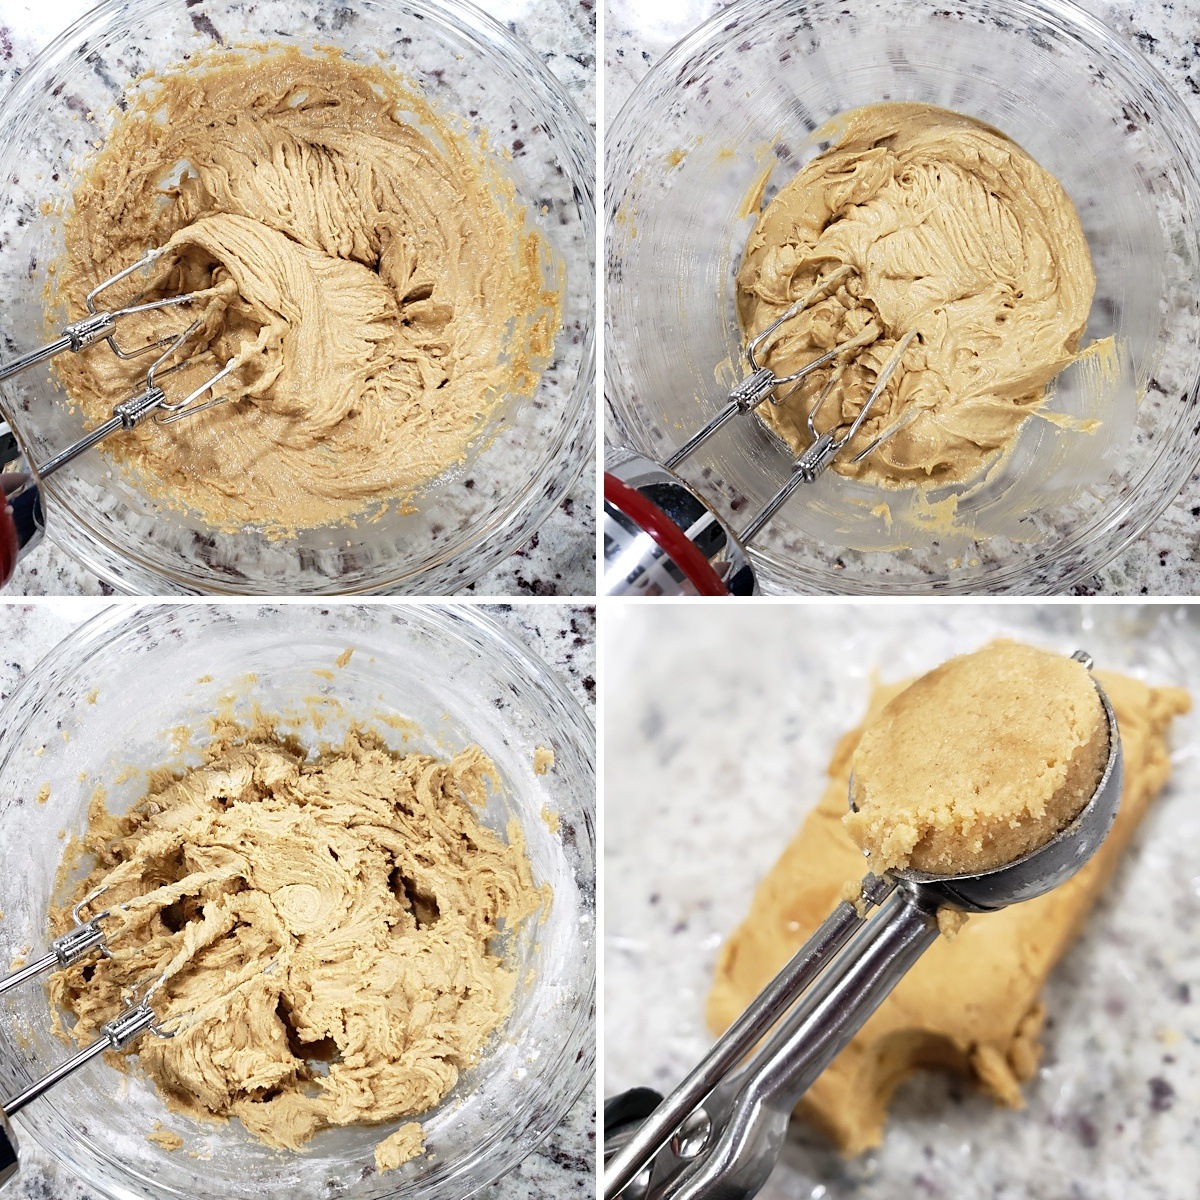 Mixing cookie dough in a glass bowl.